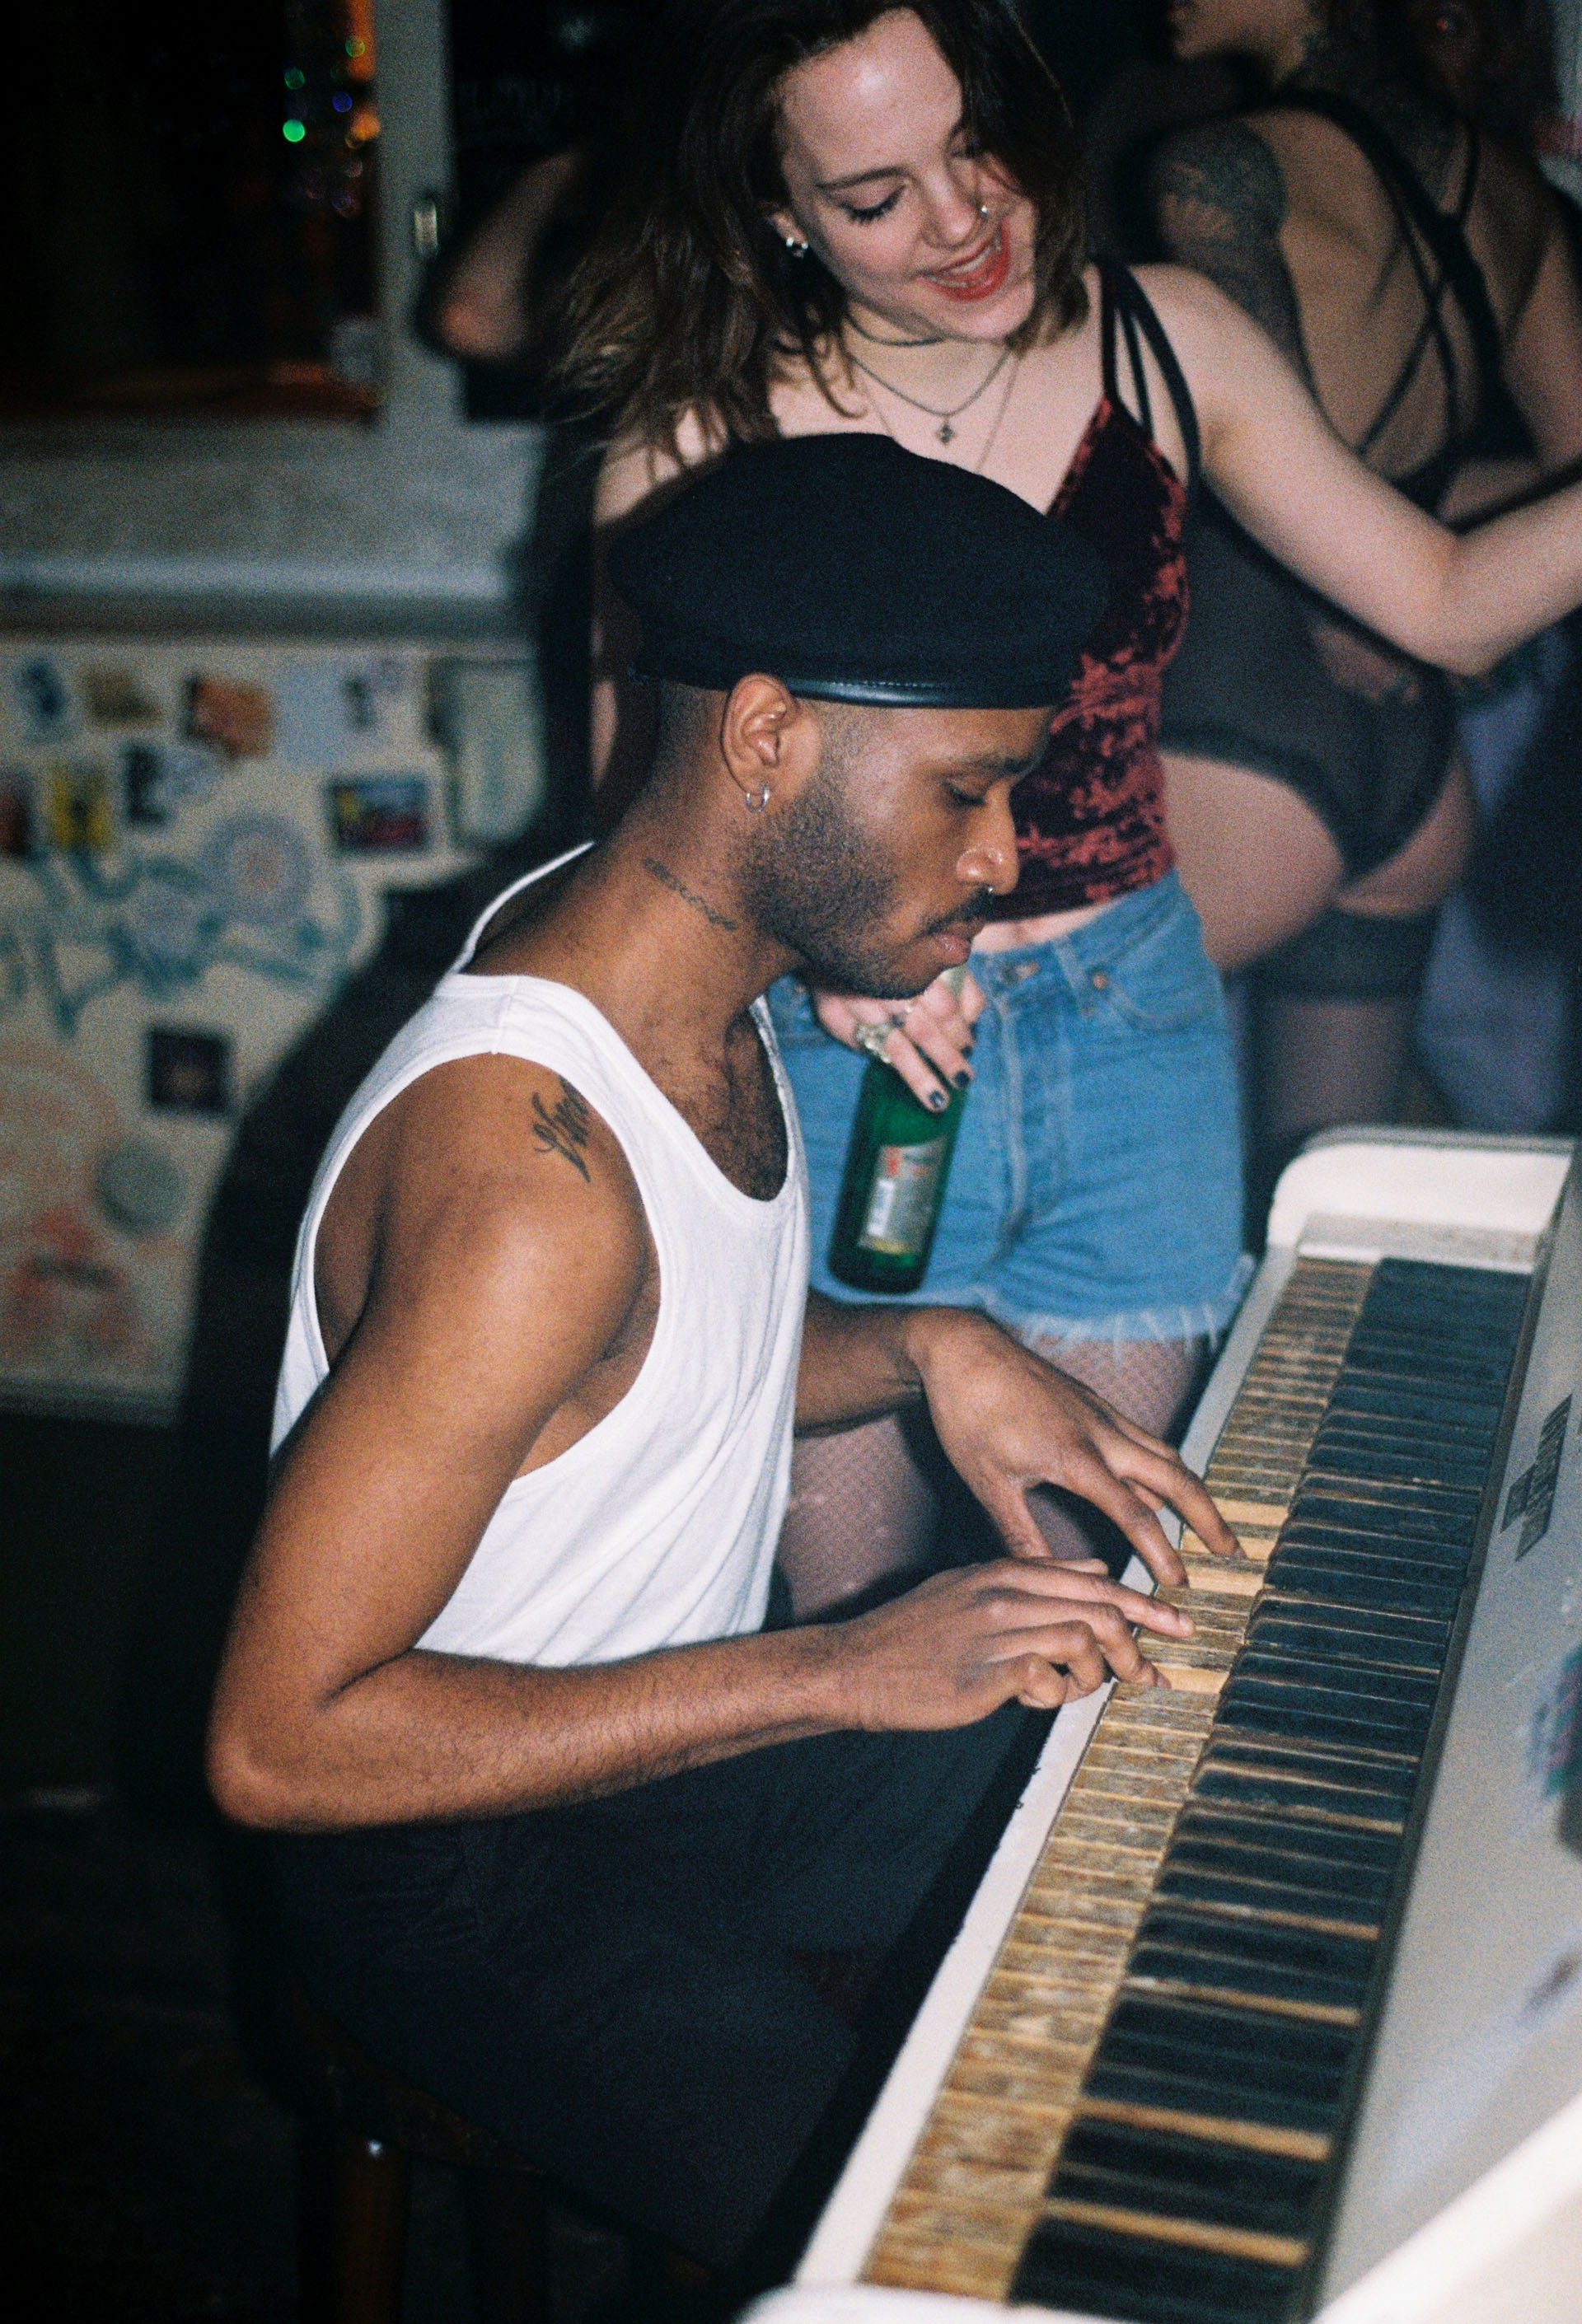 Piano Party